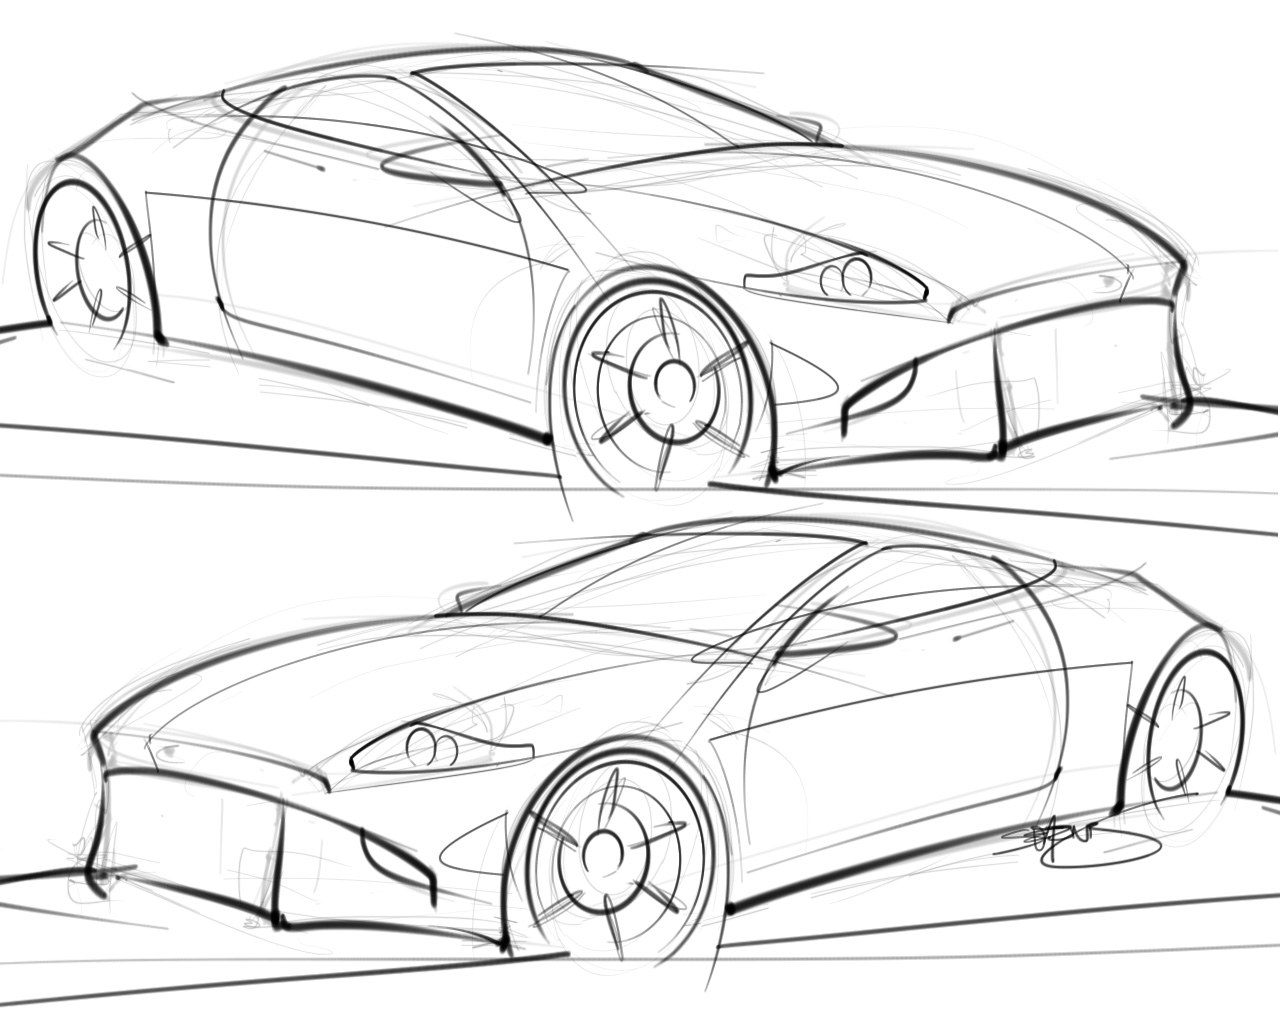 Sports Car Drawing Step By Step at GetDrawings.com | Free for ...